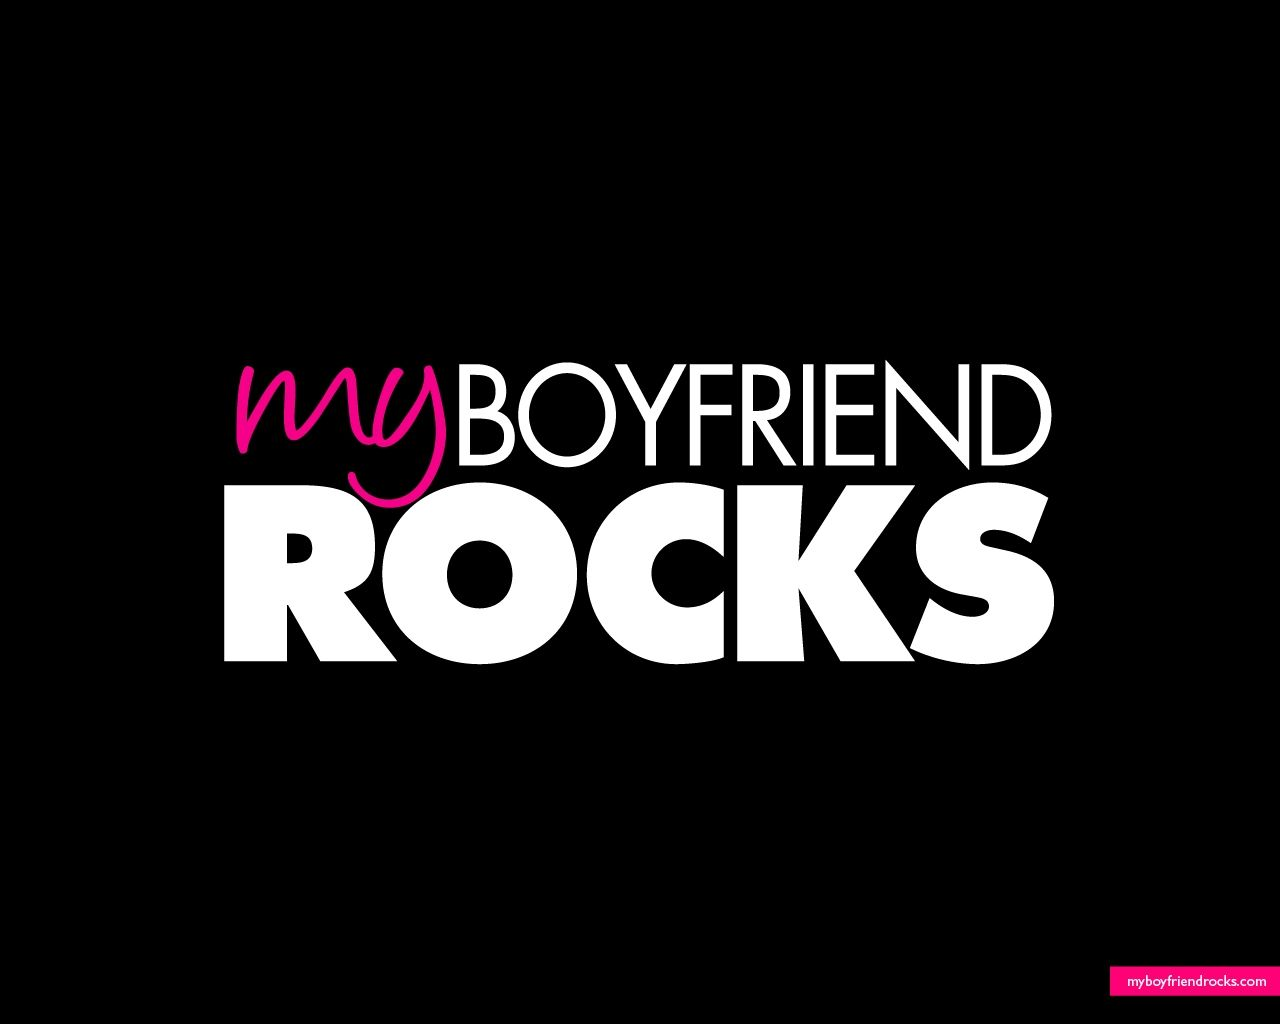 Download download wallpaper of i love my boyfriend hd new download download wallpaper of i love my boyfriend hd new download wallpaper of i love voltagebd Choice Image